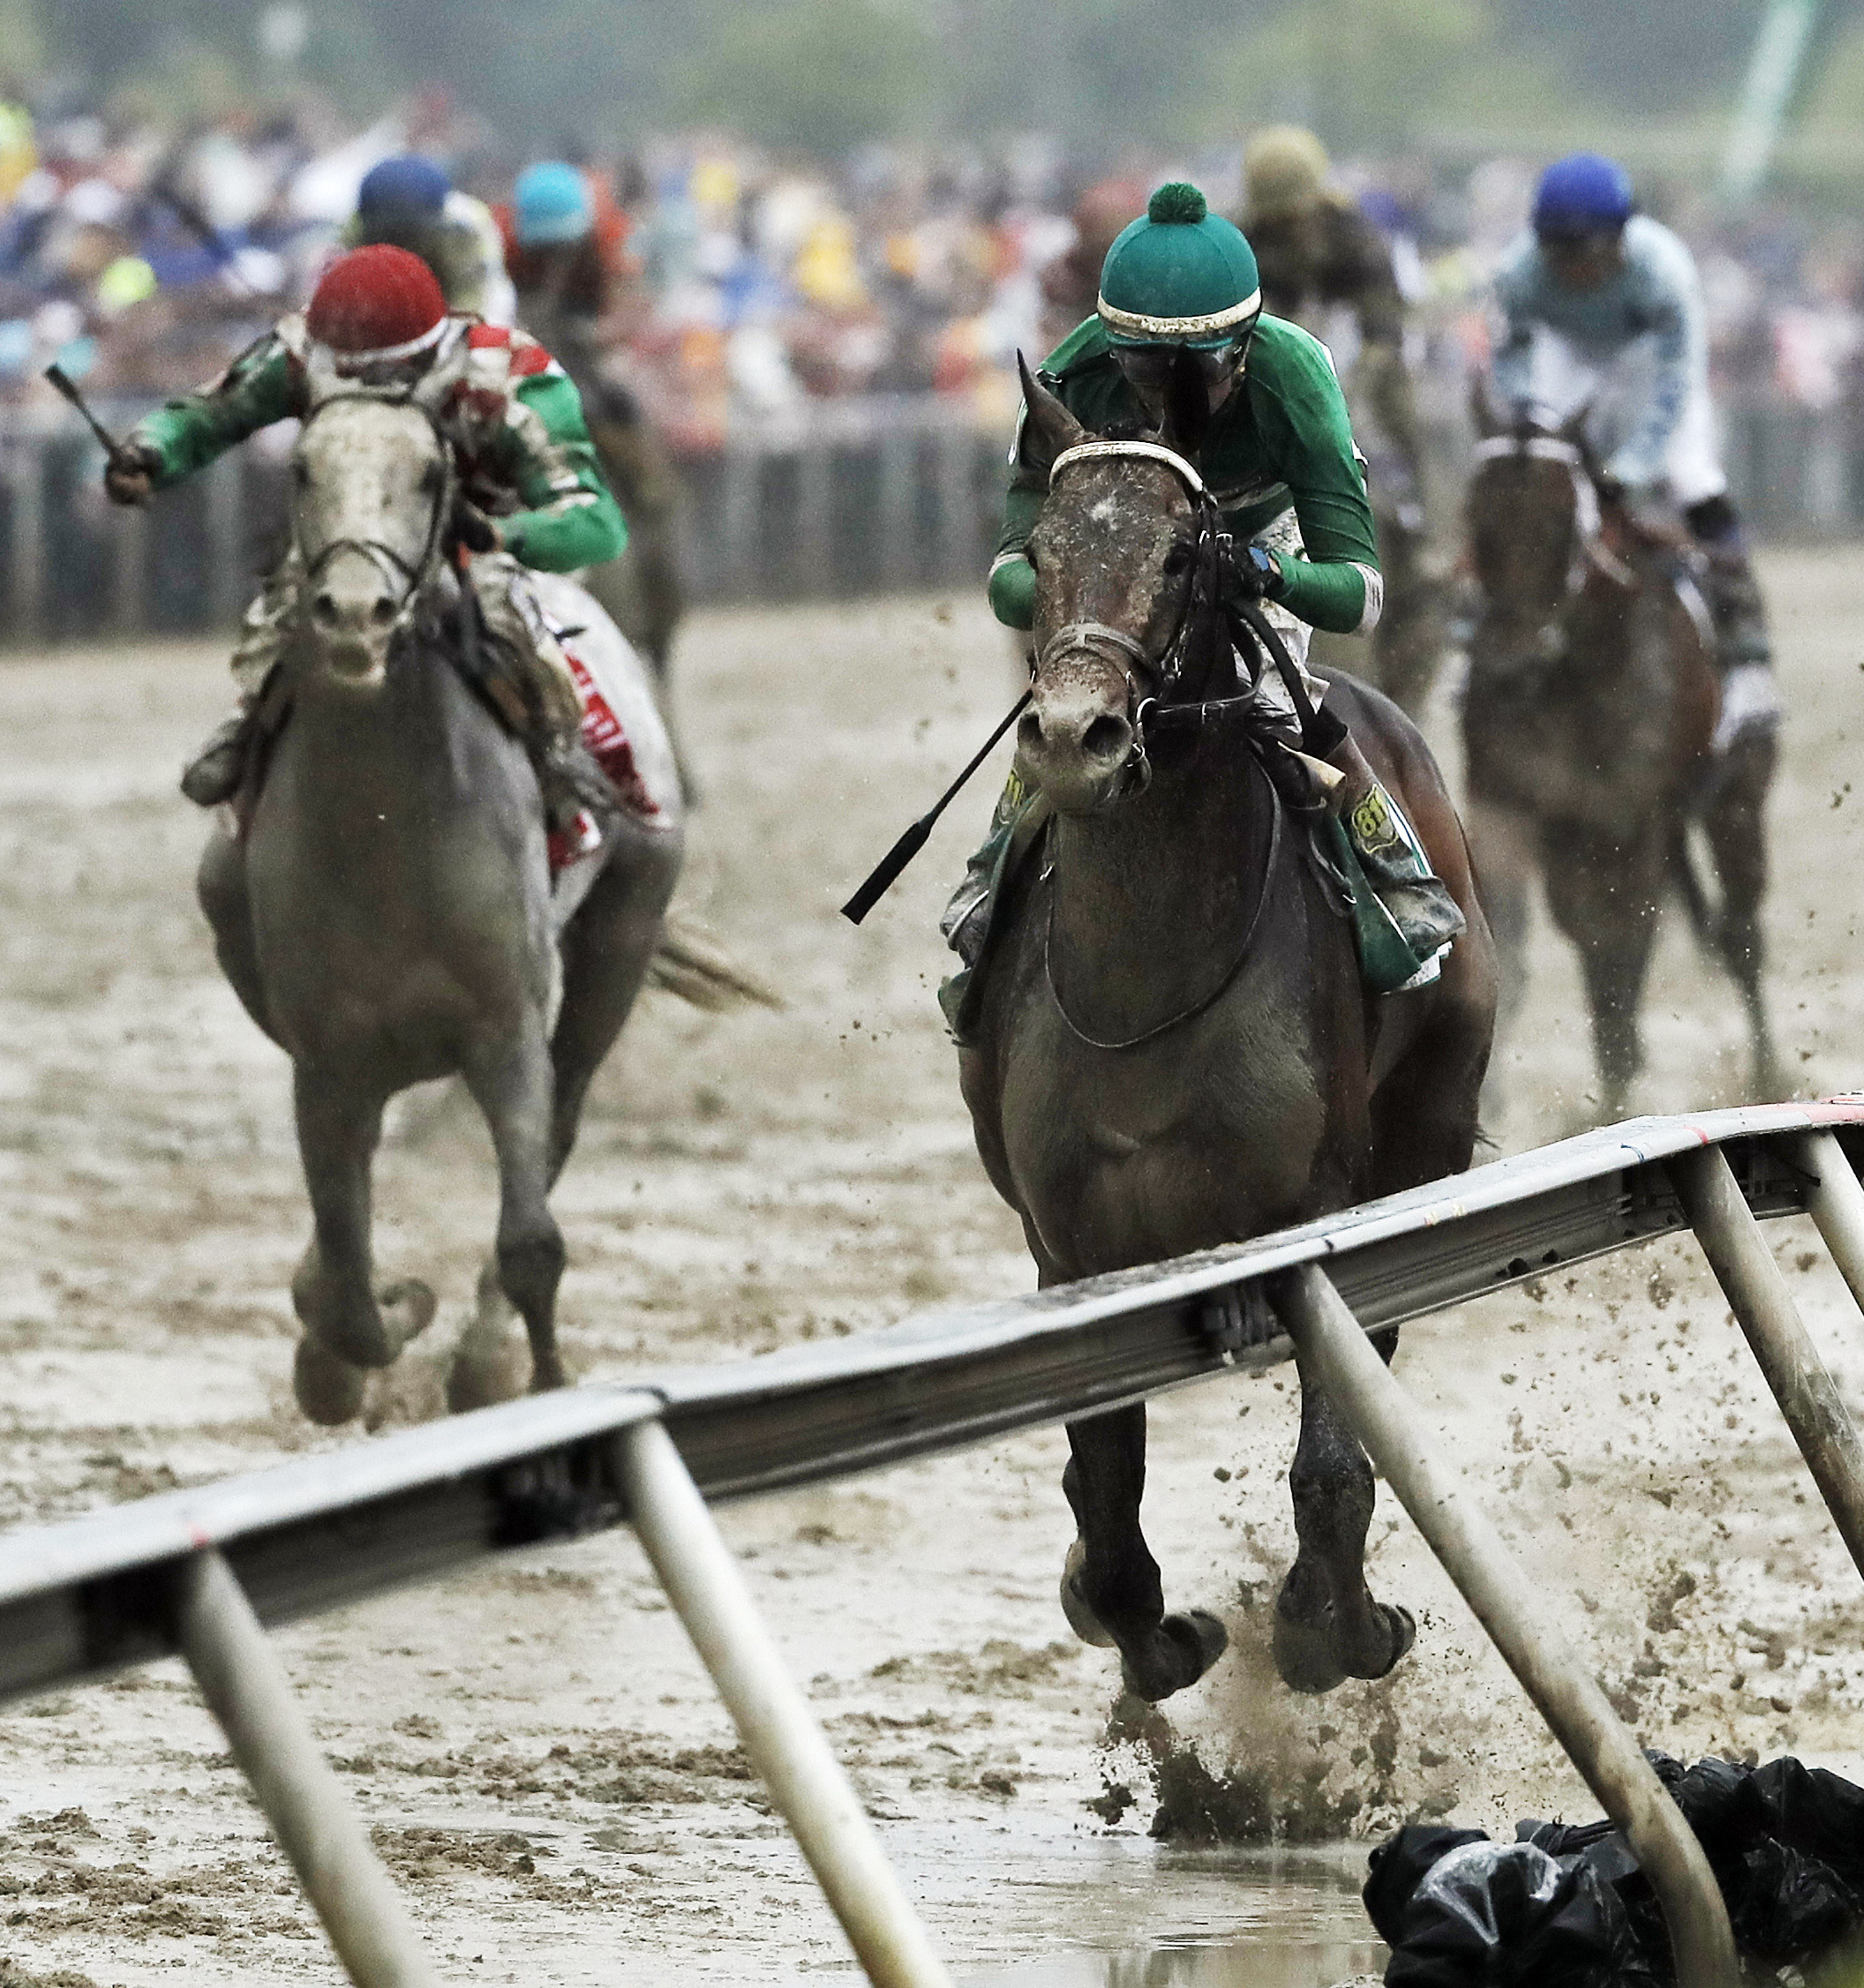 FILE - In this May 21, 2016, file photo, jockey Kent Desormeaux rides Exaggerator to win the 141st Preakness Stakes horse race at Pimlico Race Course in Baltimore. Next Saturday there'll be no Triple try. No Kentucky Derby winner, either. And no sellout c